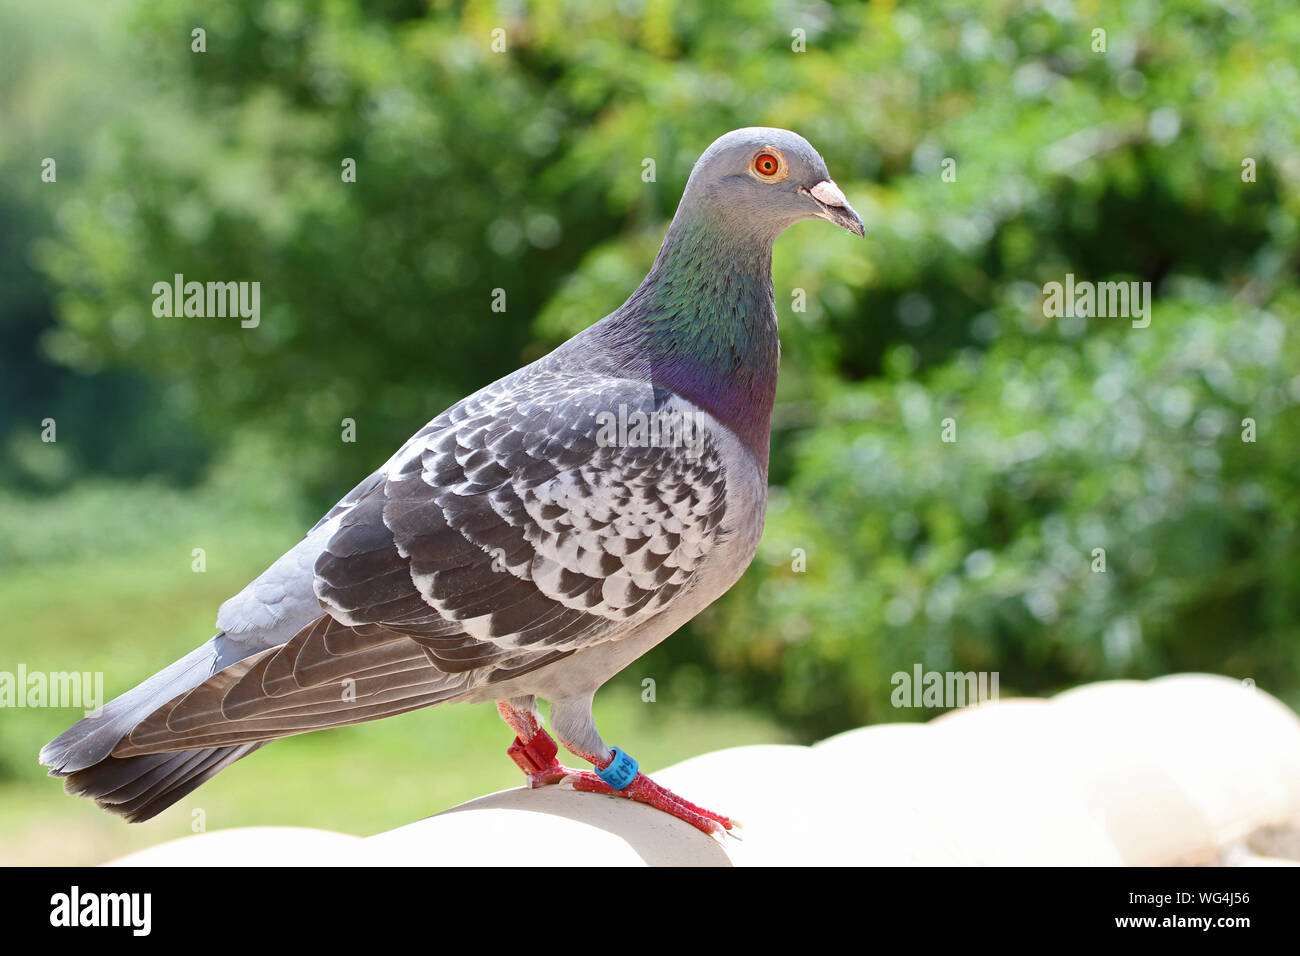 homing pigeon, racing pigeon or domestic messenger pigeon Latin columba livia domestica tags clear to see closeup on a typical pantiled roof in Italy Stock Photo